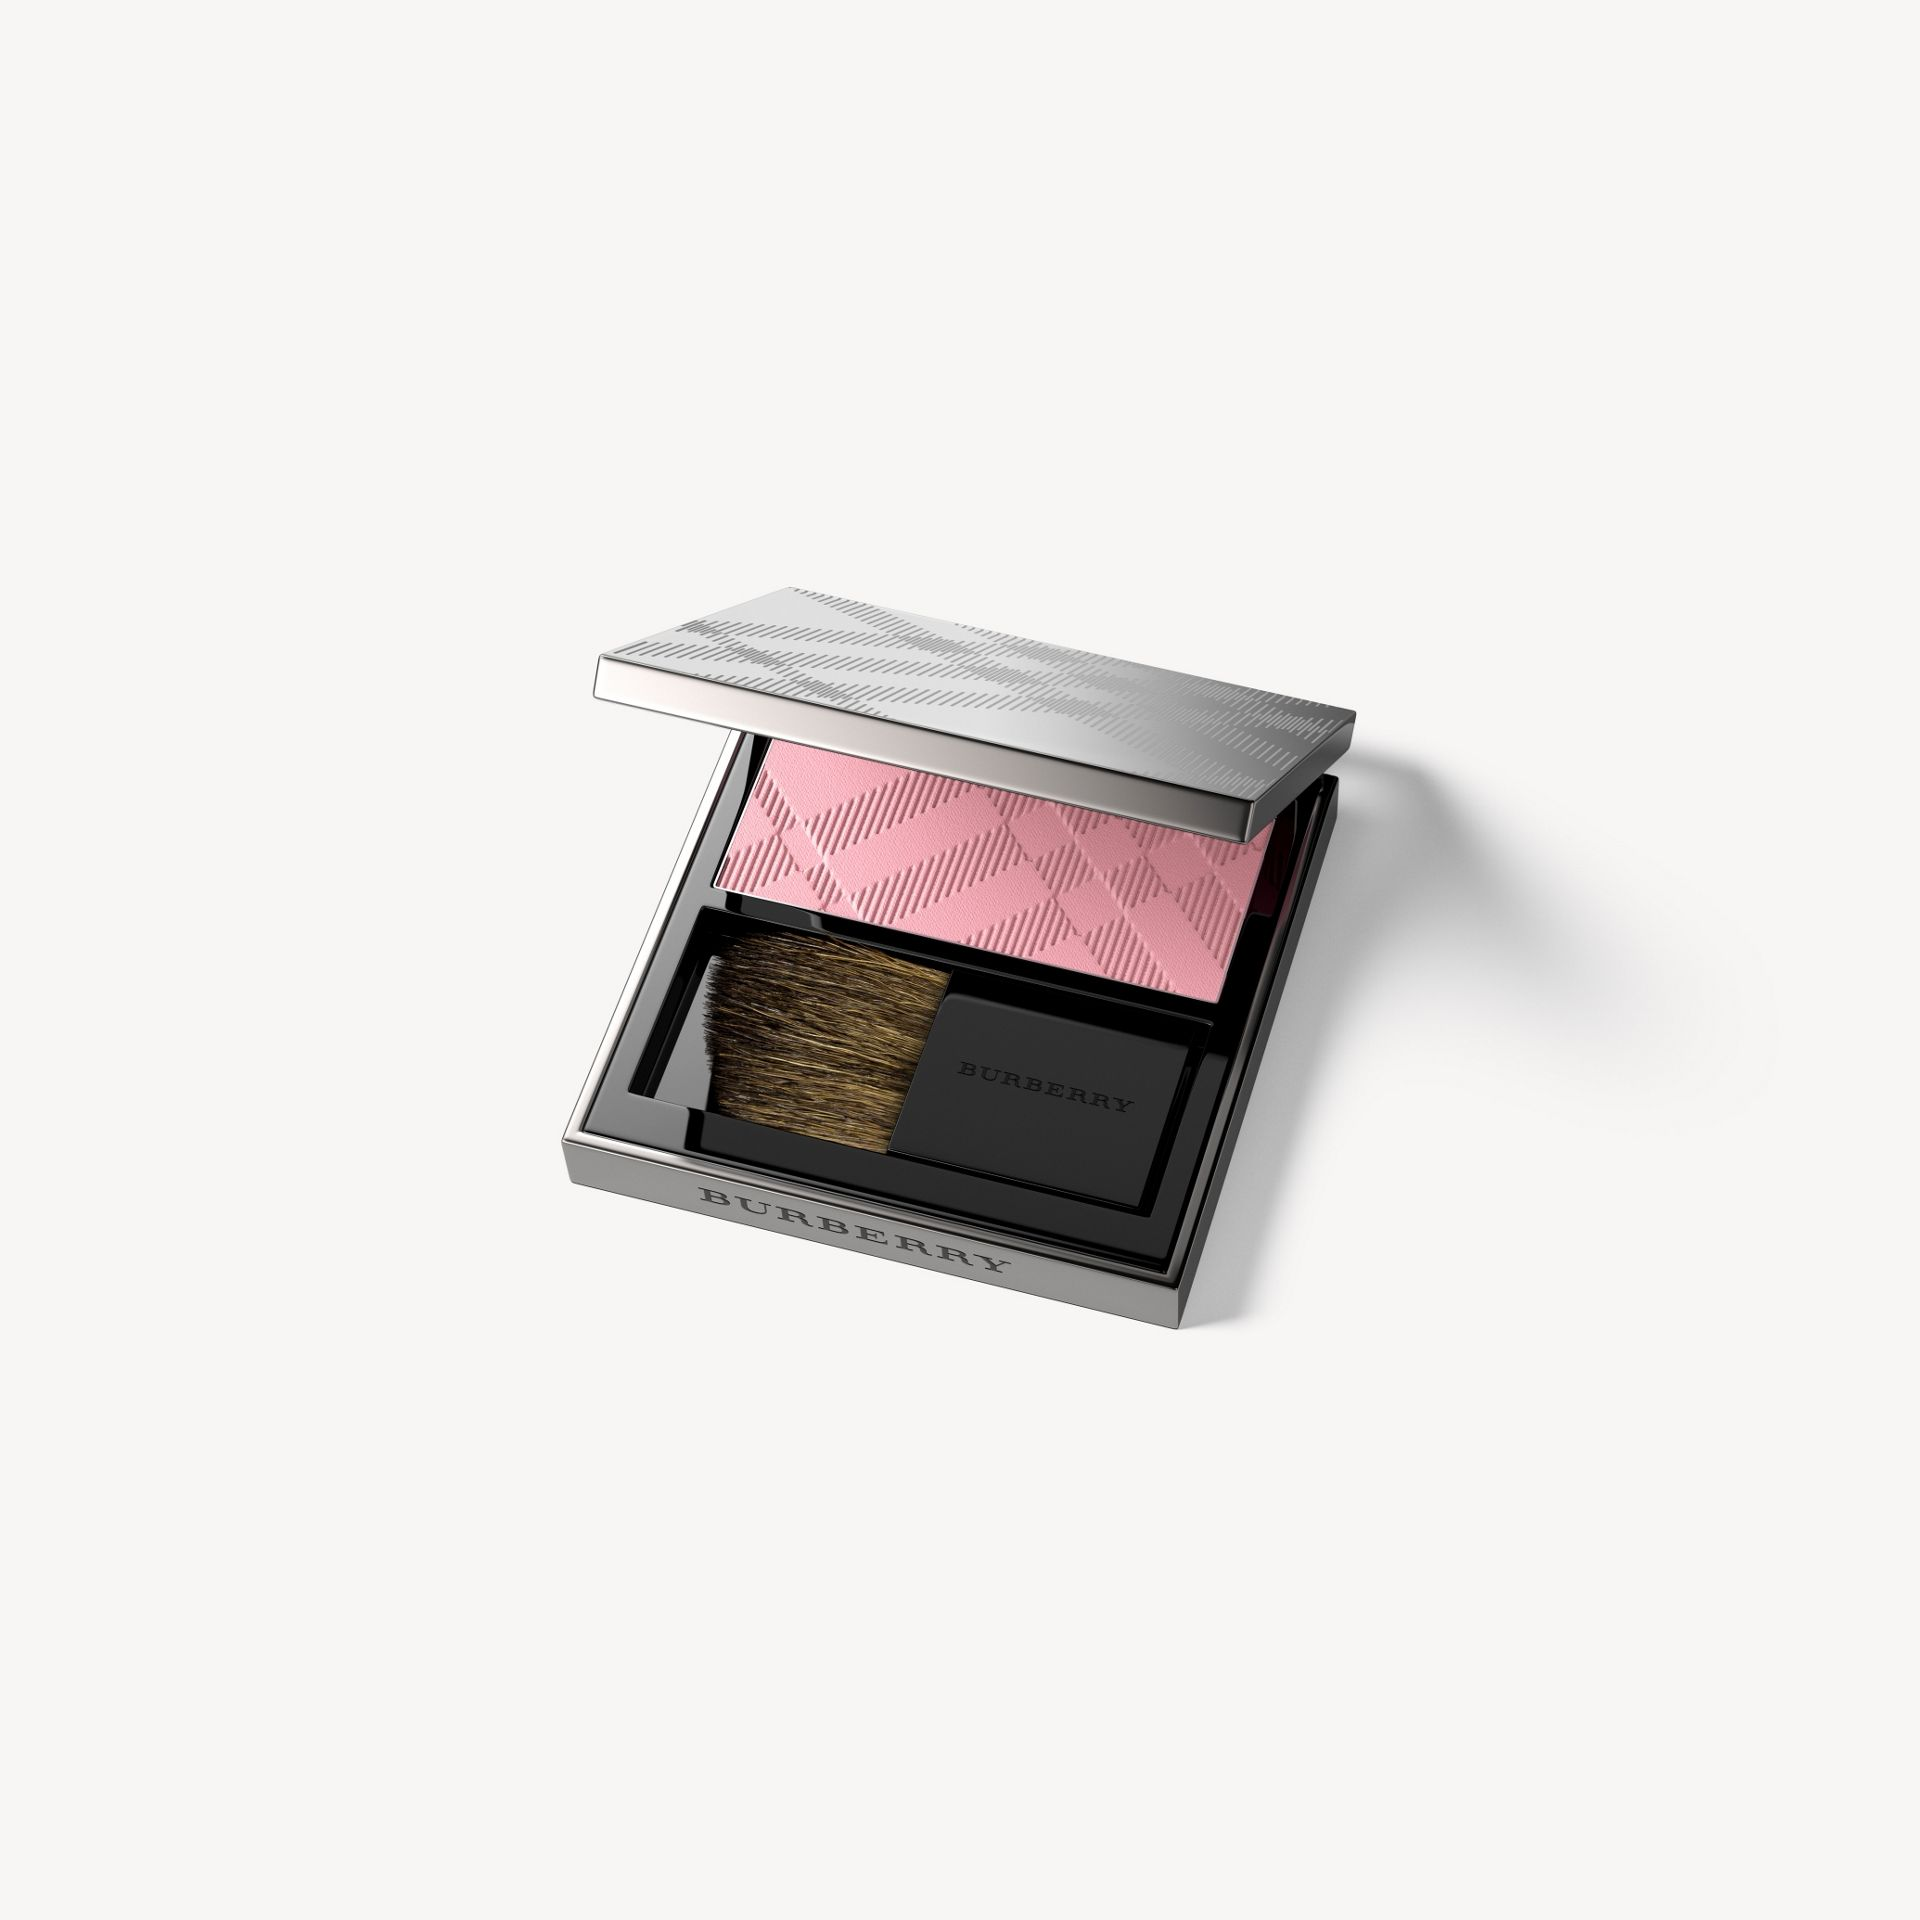 Румяна Light Glow, Cameo Blush № 02 (№ 02) - Для женщин | Burberry - изображение 0